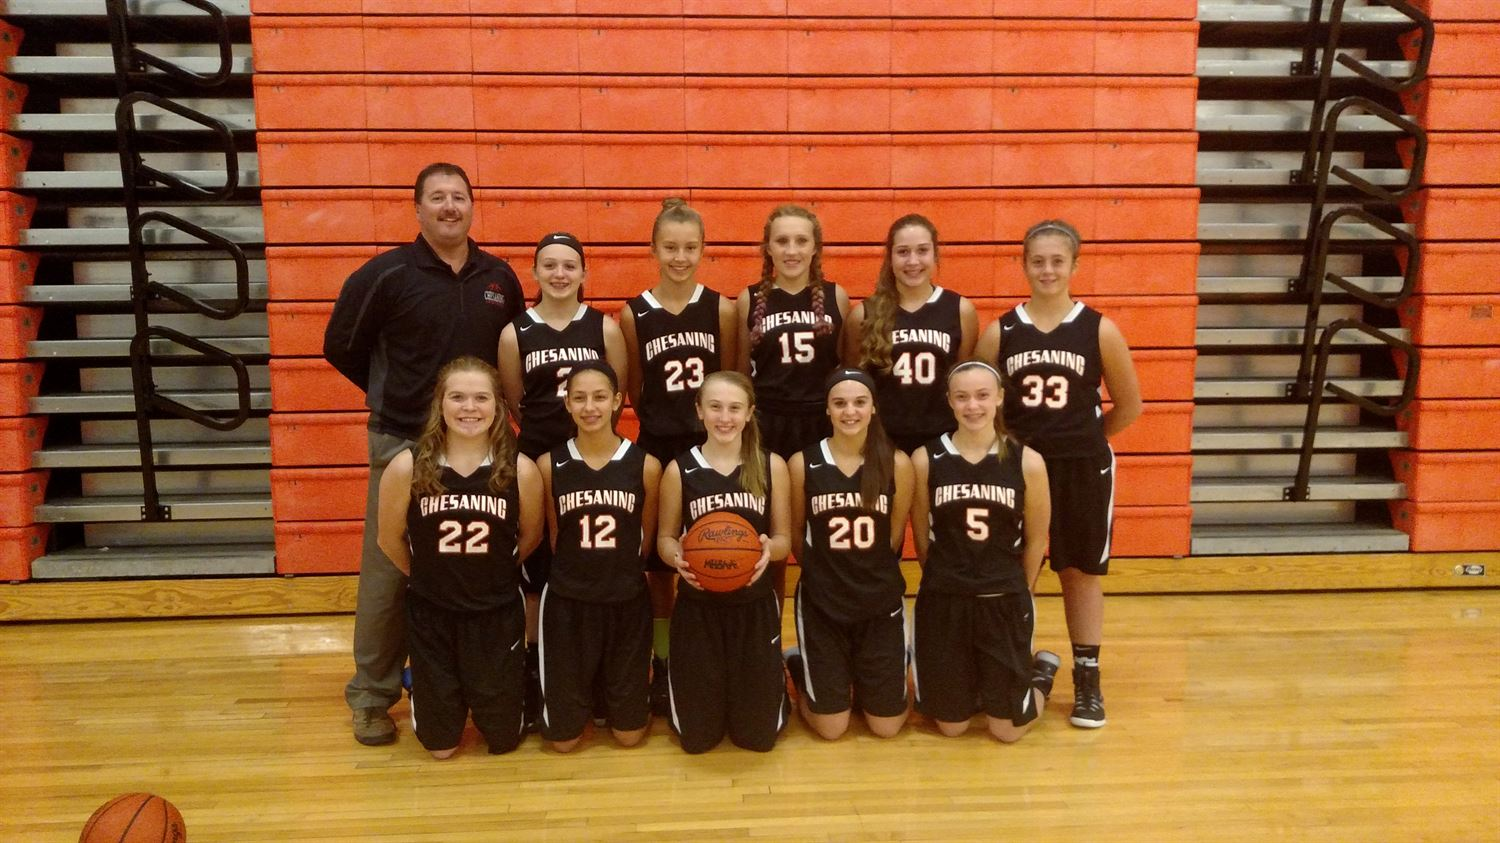 Chesaning High School - Girls' JV Basketball